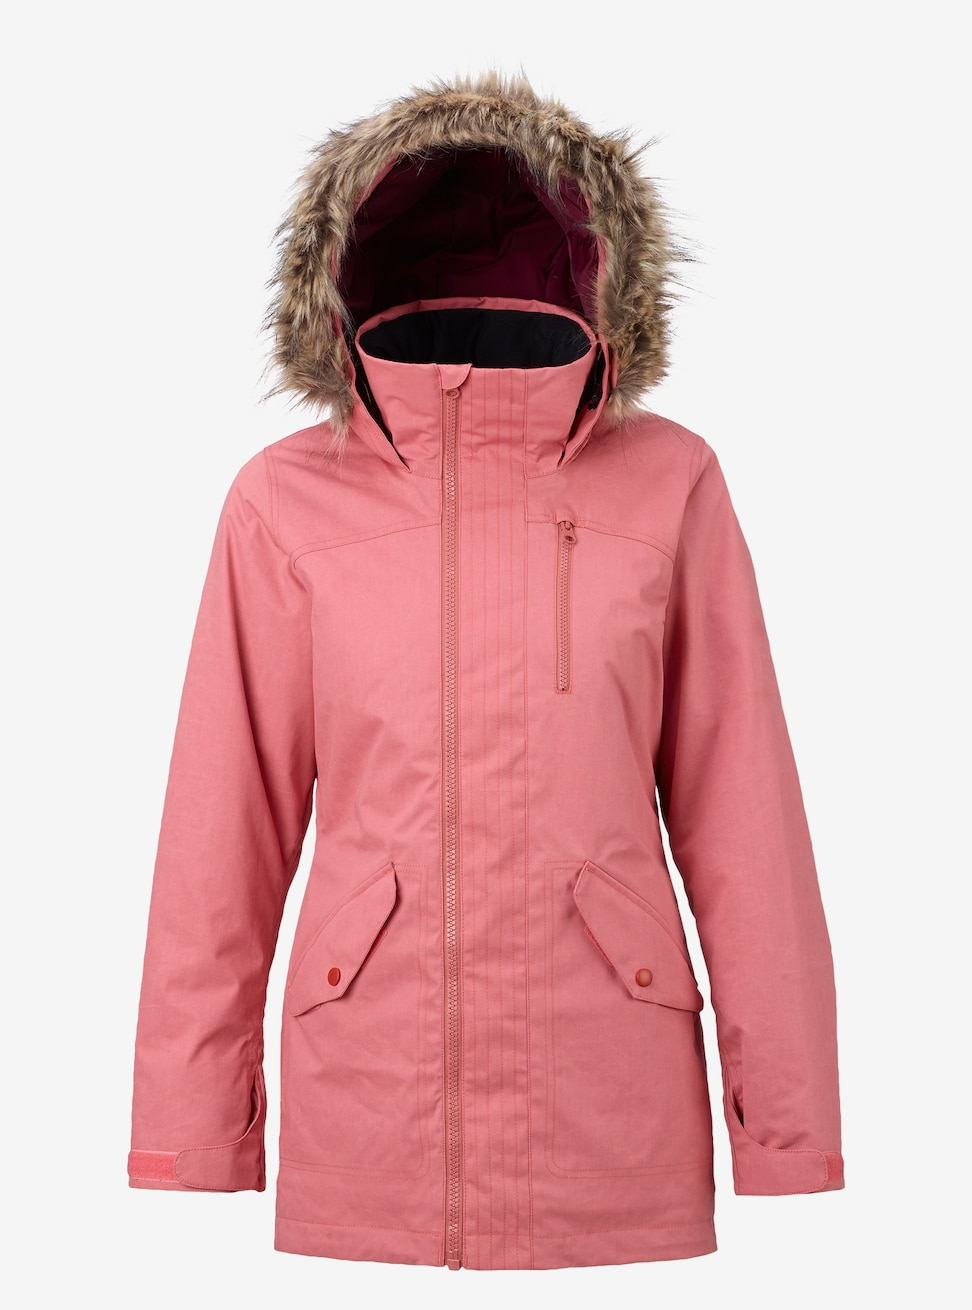 Rose Burton Hazel Ski Jacket for Women, Front